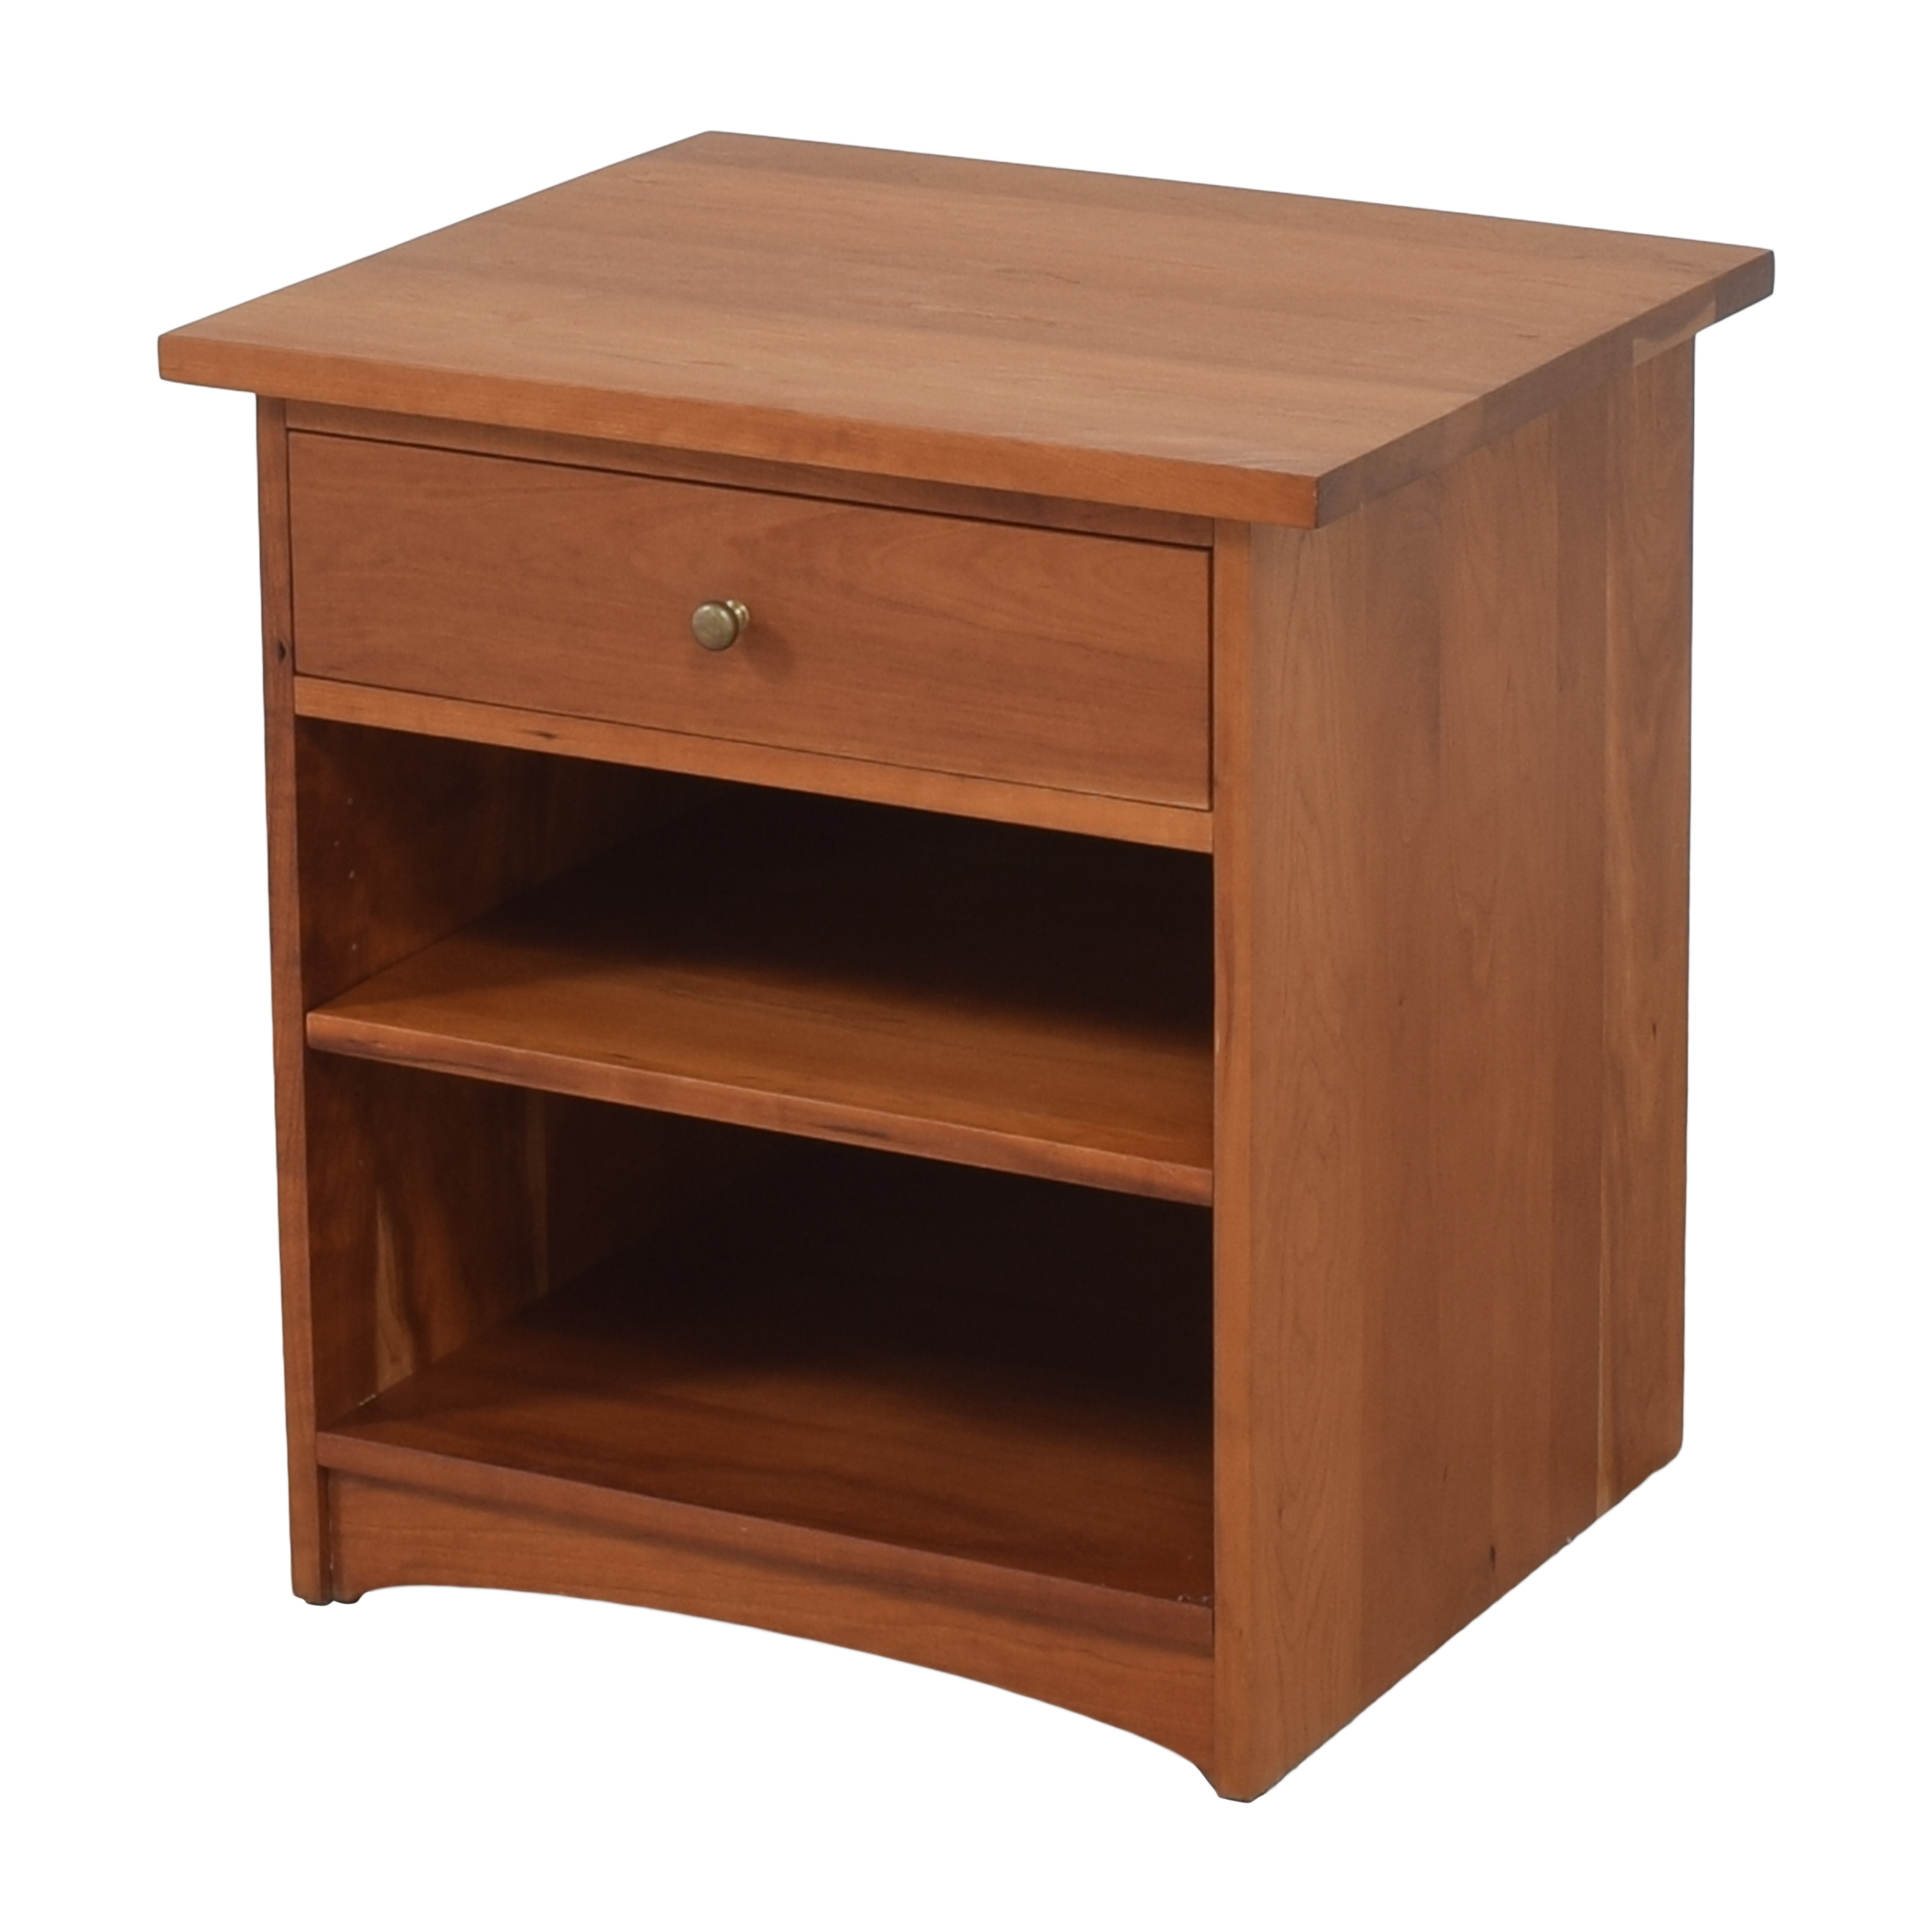 Scott Jordan Furniture Scott Jordan Furniture End Table dimensions